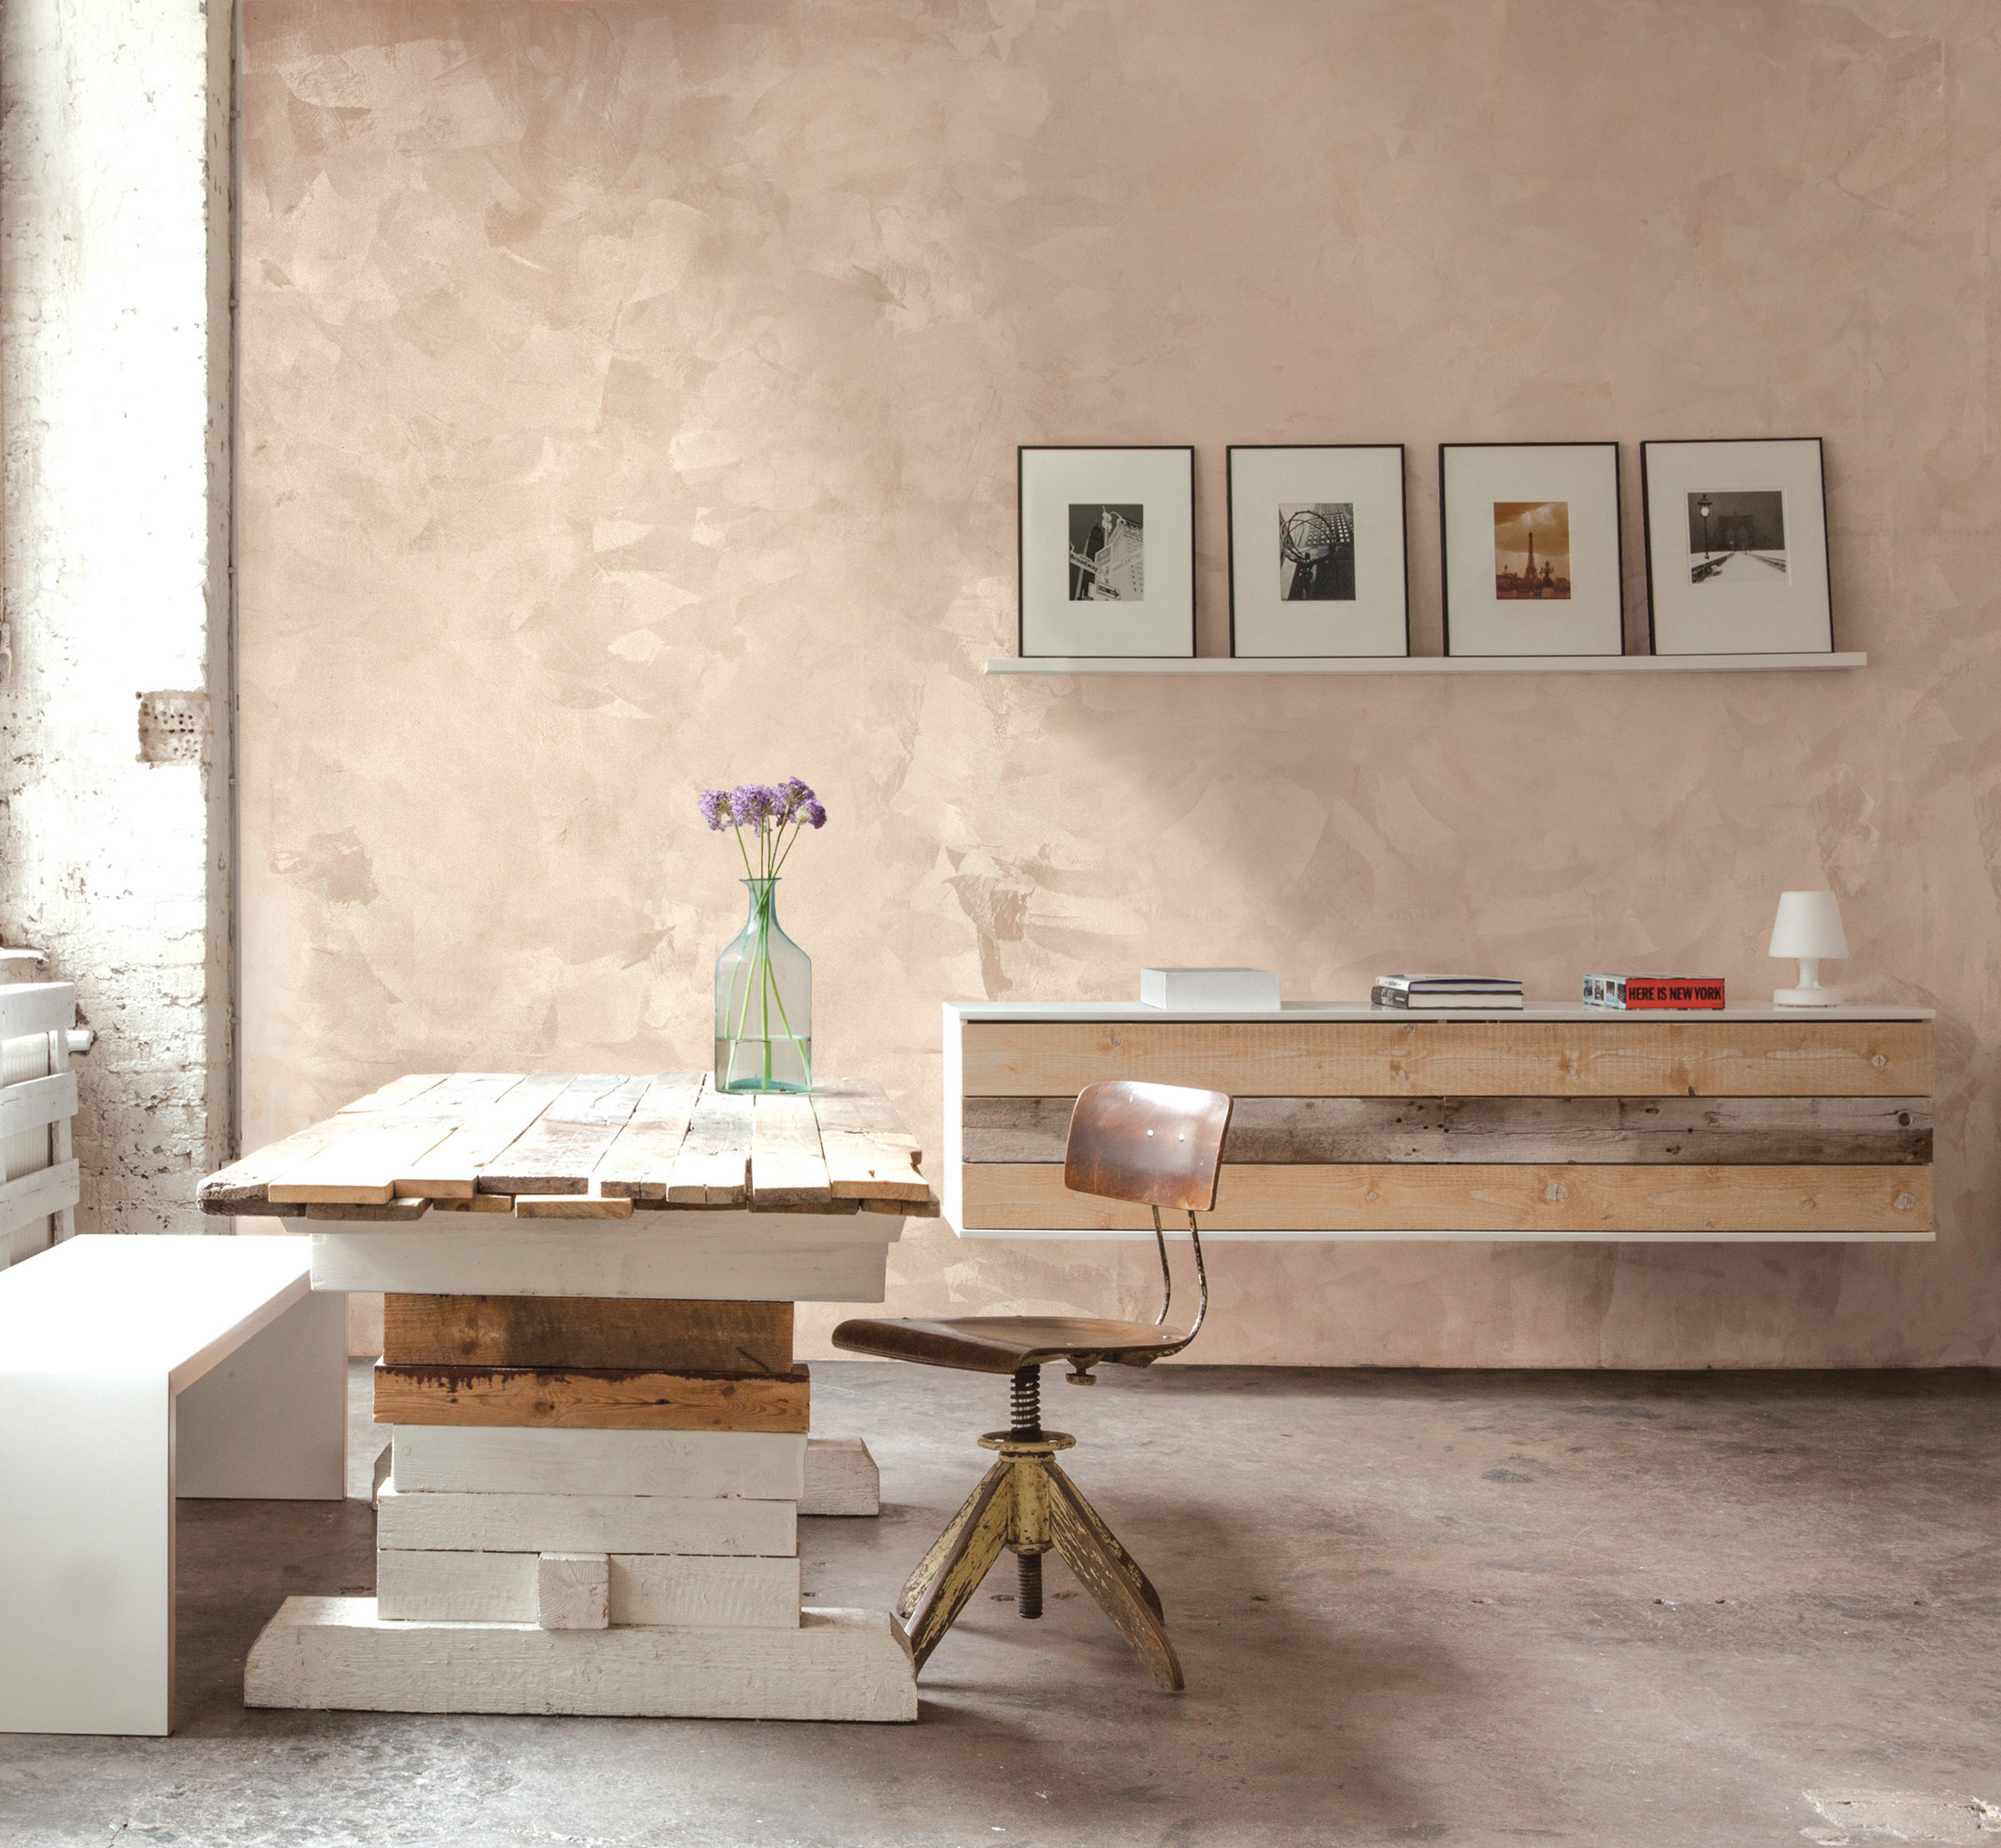 Dulux paints launches new products that produce silky layered and metallic effects